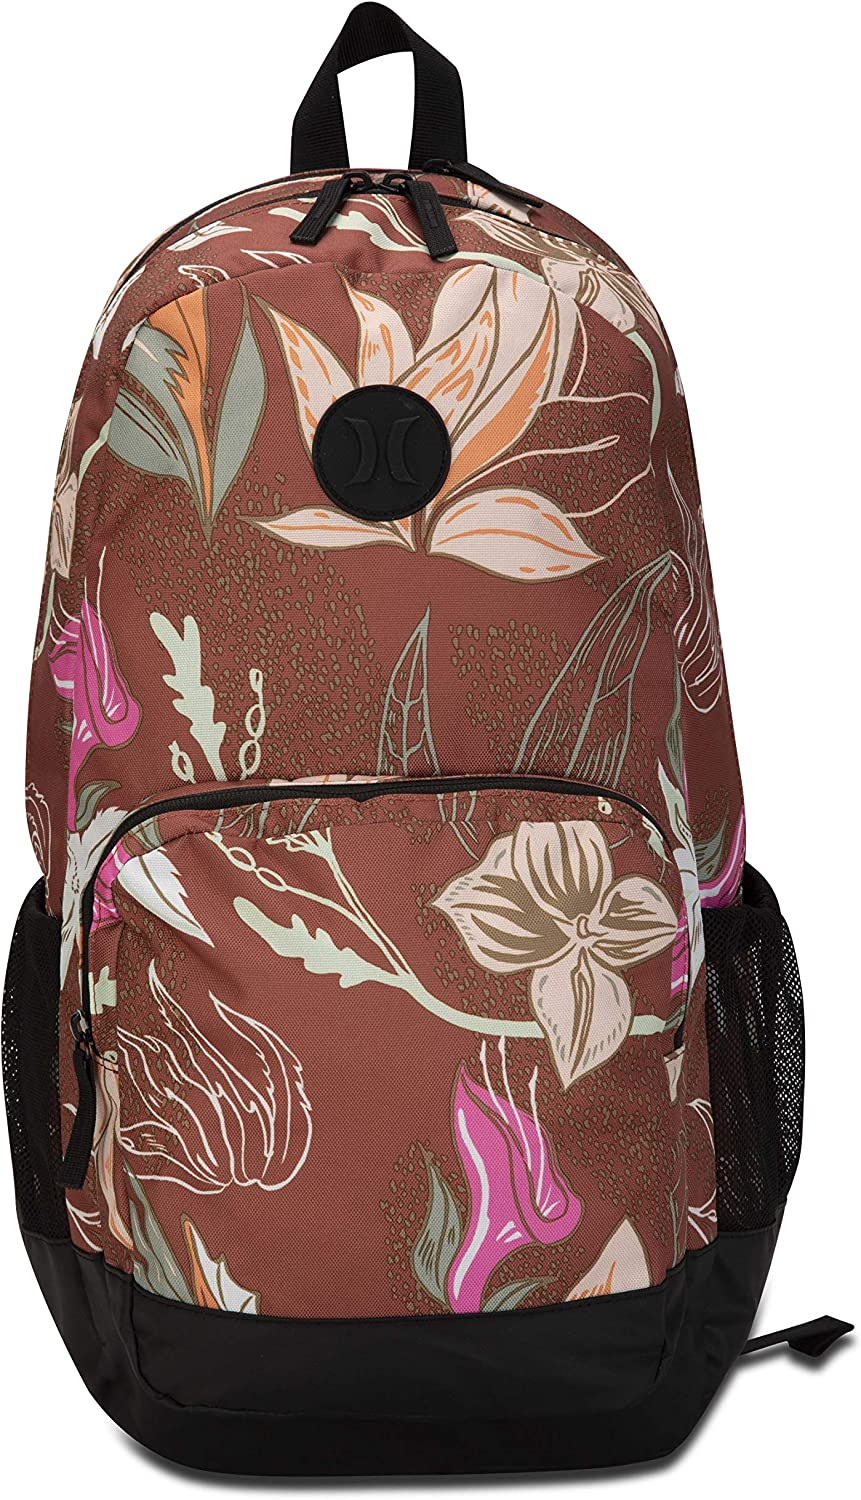 Hurley Damen W Printed Renegade Backpack Rucksack